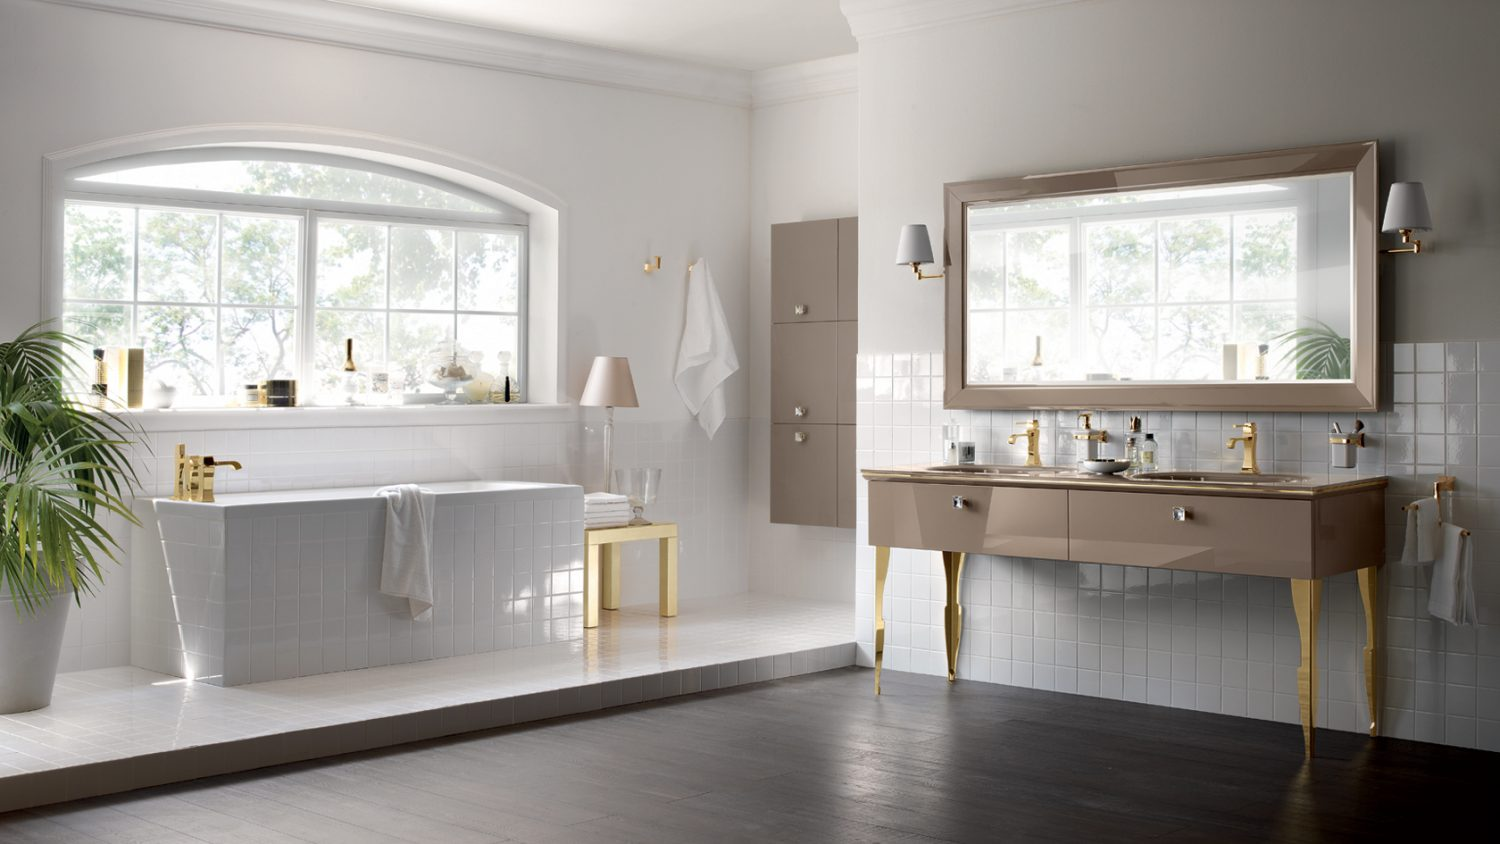 scavolini of mosbuild best bathroom exhibitors mosbuild best bathroom exhibitors MOSBUILD 2019 BEST BATHROOM EXHIBITORS 6514 arredo bagno magnifica 1